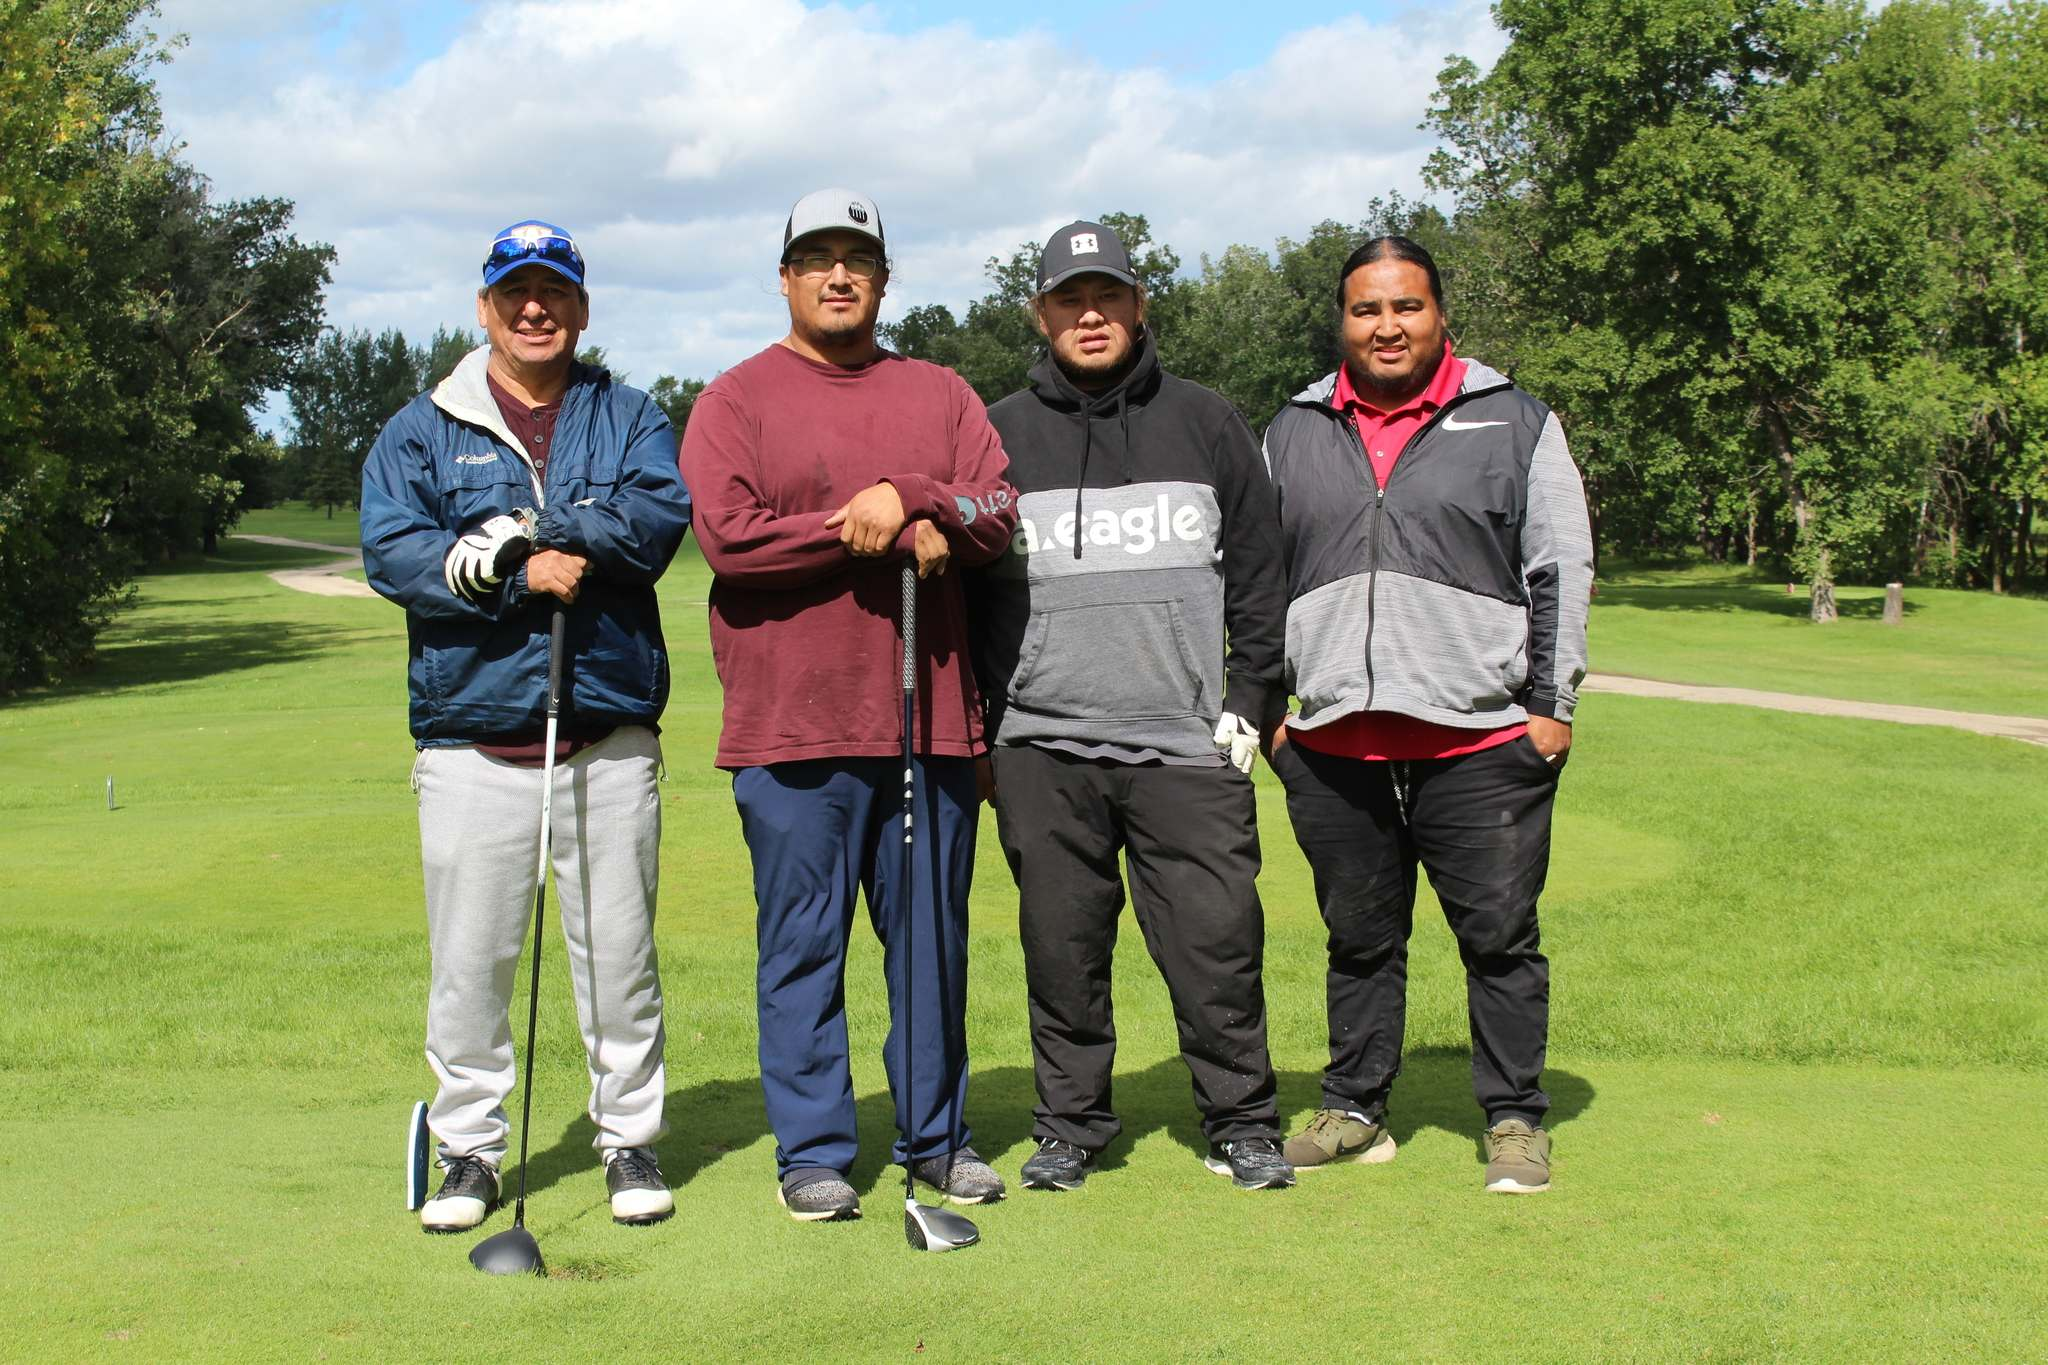 A team from Birdtail Sioux First Nation played at the third annual golf tournament hosted yesterday by the Southern Chiefs' Organization. (Submitted)